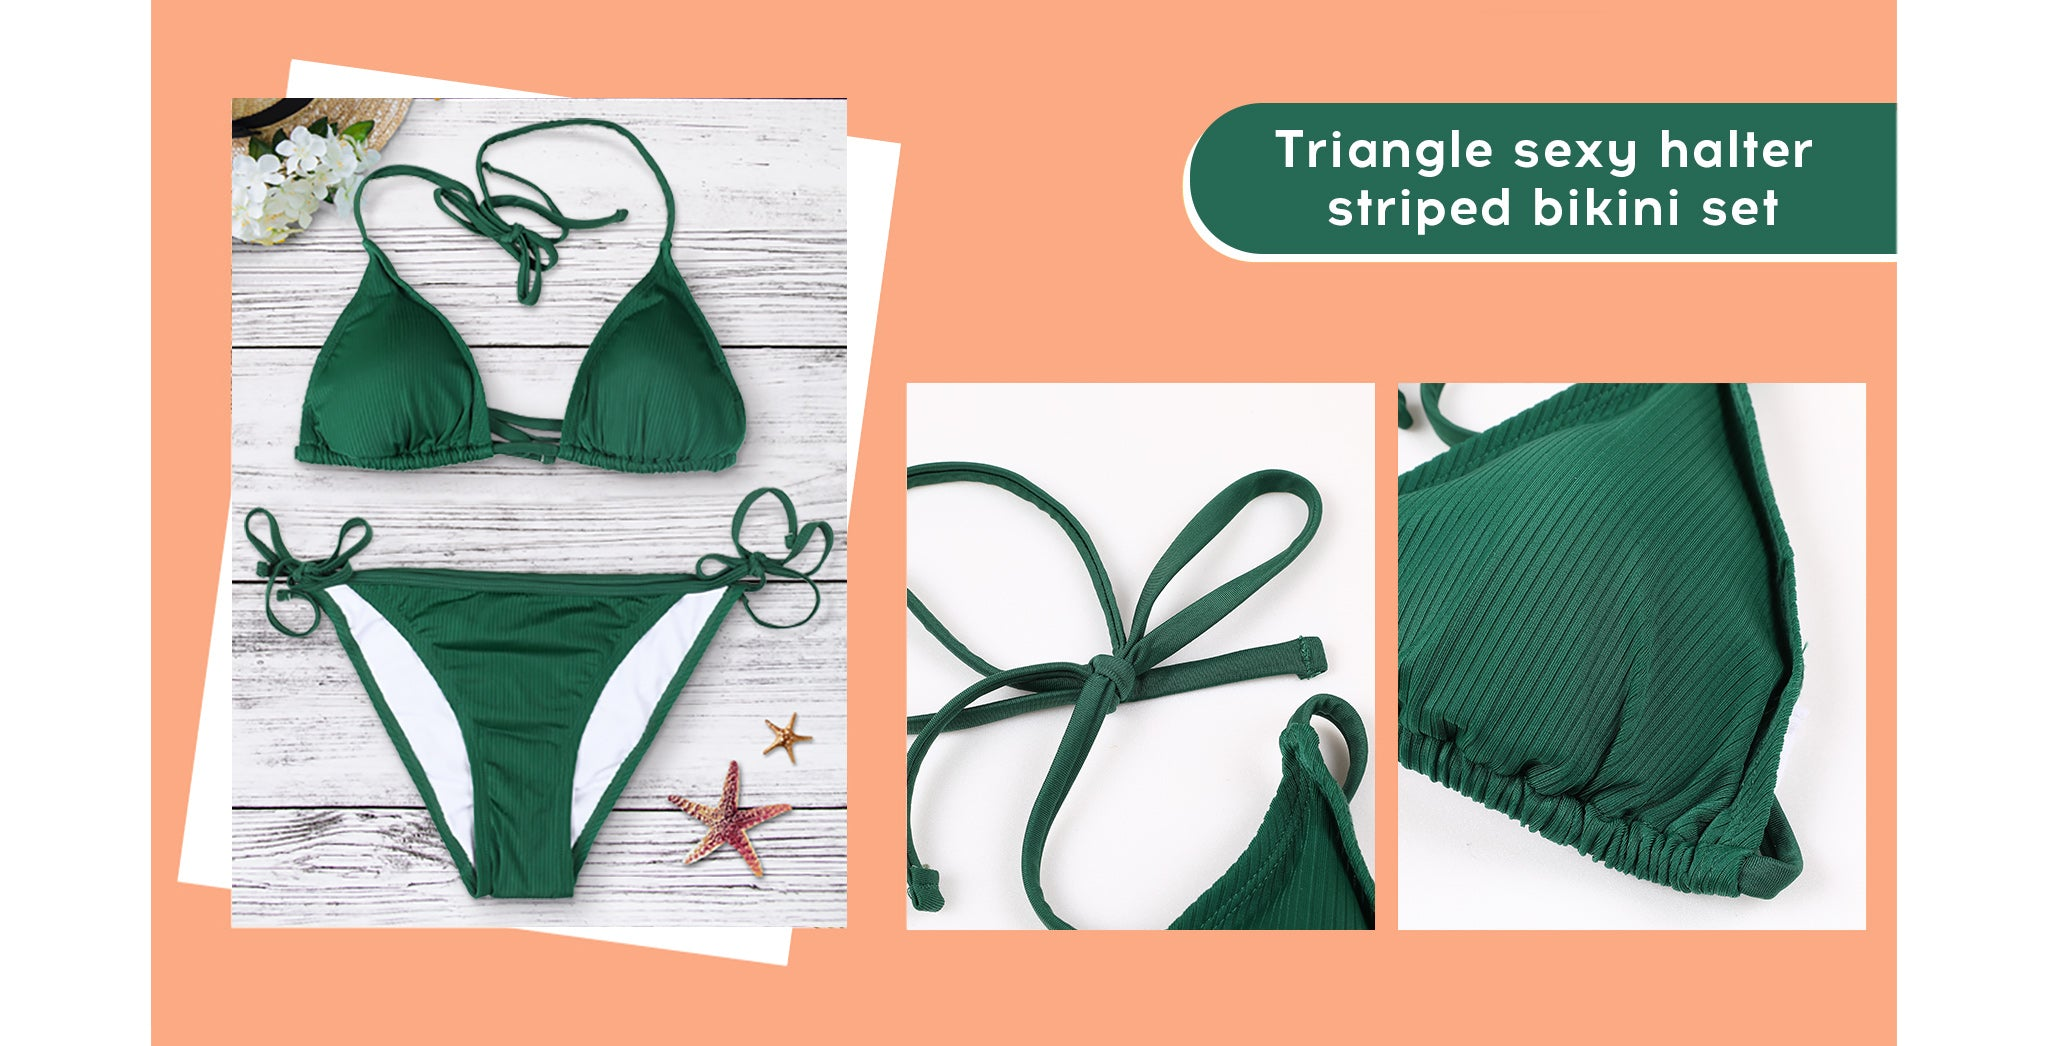 https://mycharmo.com/collections/bikini/products/triangle-sexy-halter-striped-bikini